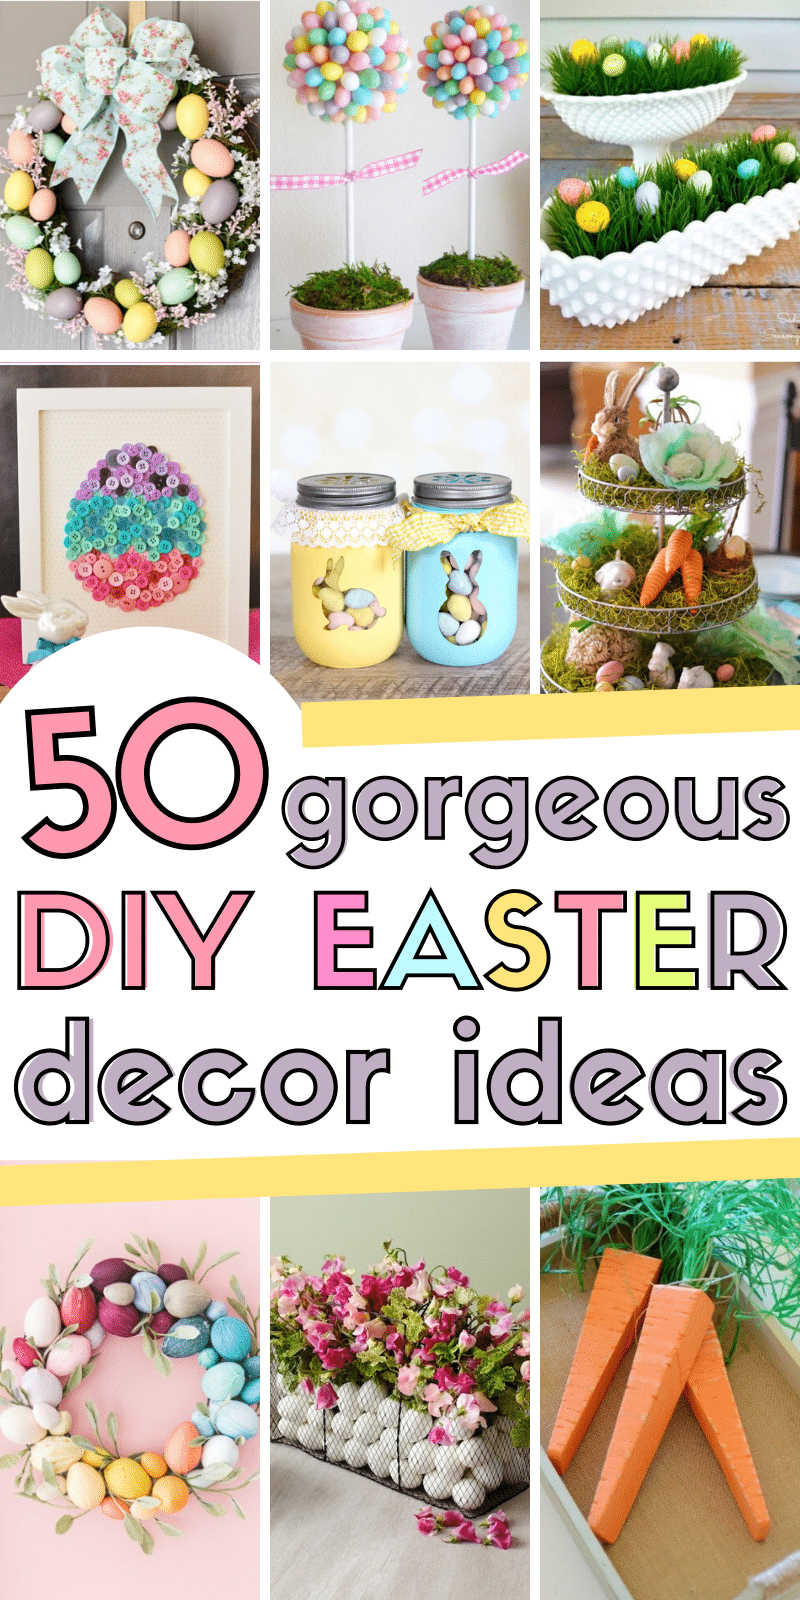 Spruce up your home for Easter with these 50 cheap & easy STUNNING DIY decor ideas for Easter. #easterdecor #diyeasterdecor #cheapeasterdecor #simpleeasterdecor #farmhouseeasterdecor #dollarstoreeasterdecor #diydecorideasforideas